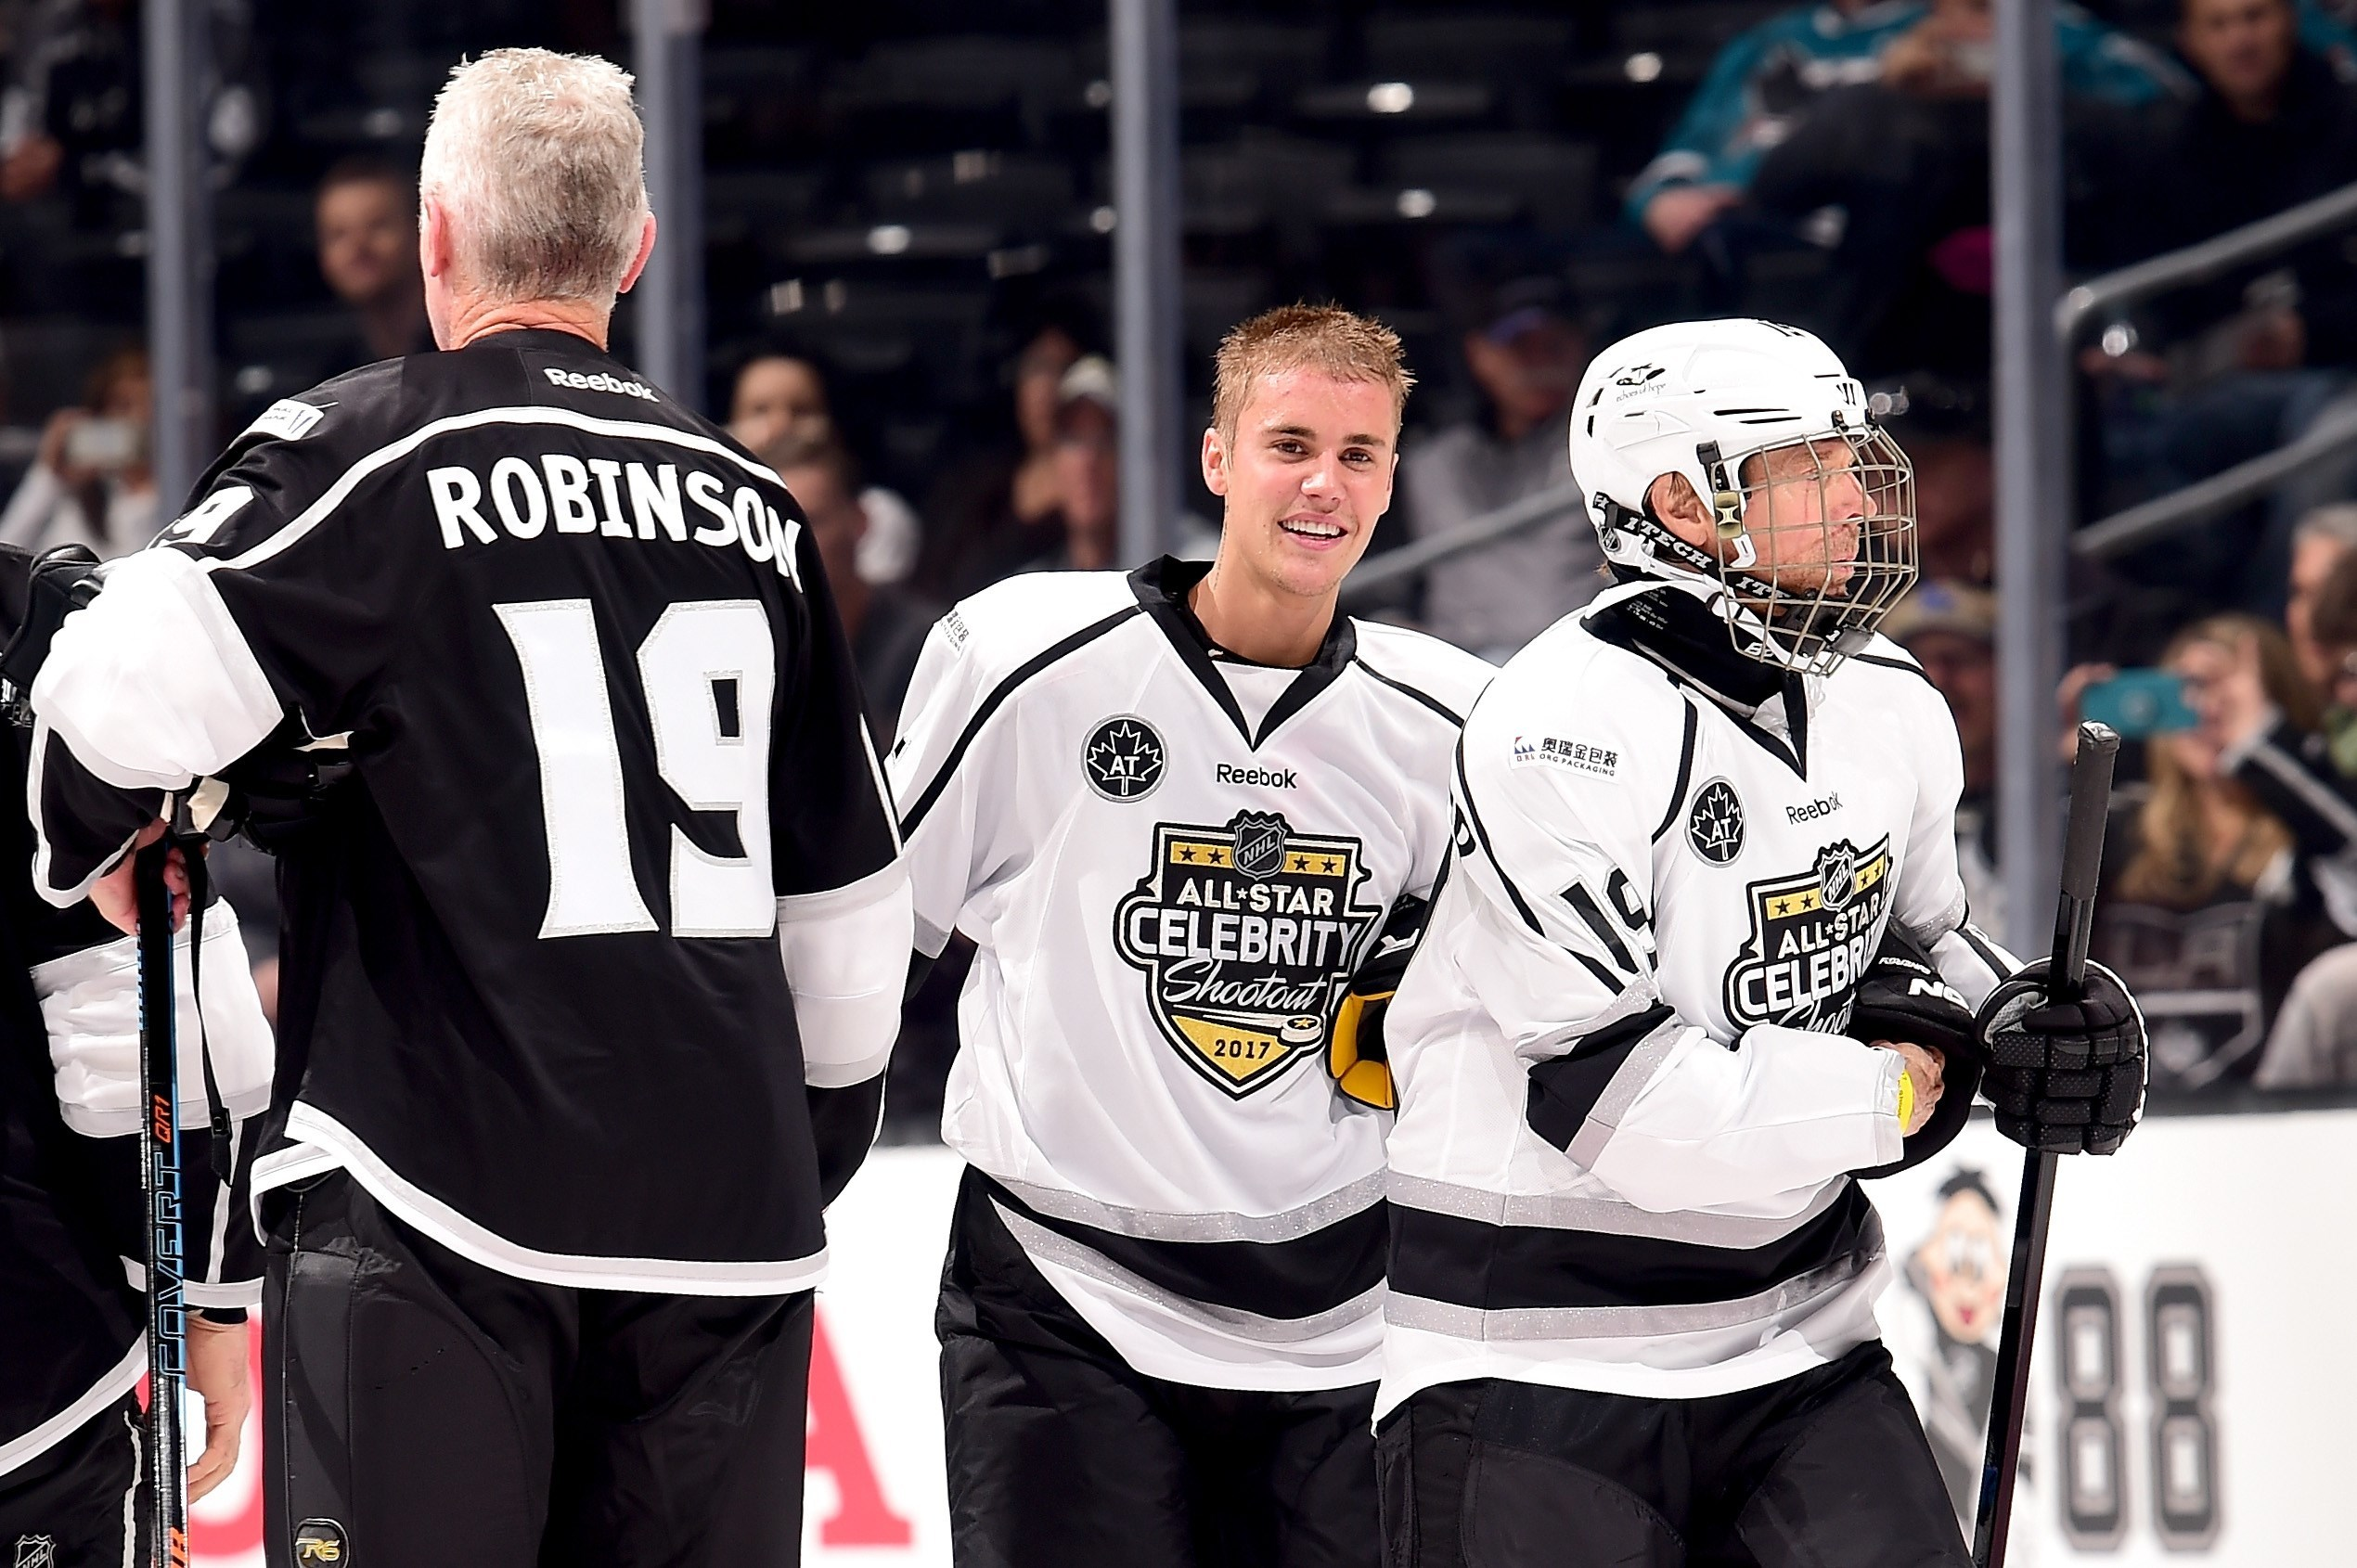 Justin Bieber plays hockey with the West Point hockey team